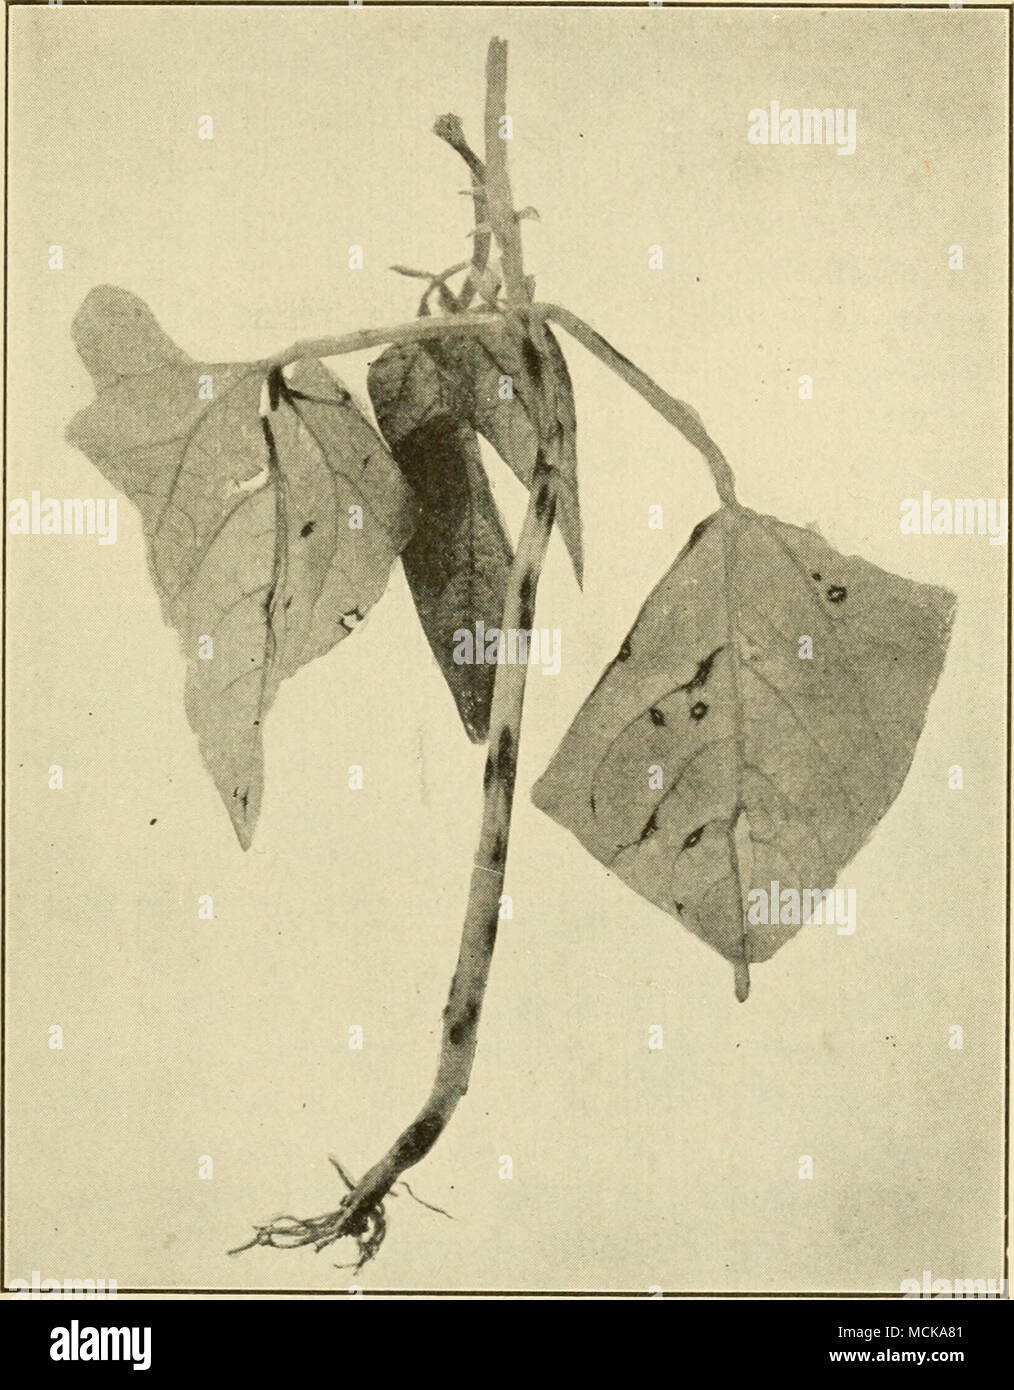 . Fig. 81, — Bean anthracnose upon stem and leaves of young plants. After Whetzel. by beans bearing the spots above mentioned. Such seeds result in infected seedlings which serve as a multiplying medium for the fungus and result in its spread and general attack upon the field. - Stock Image